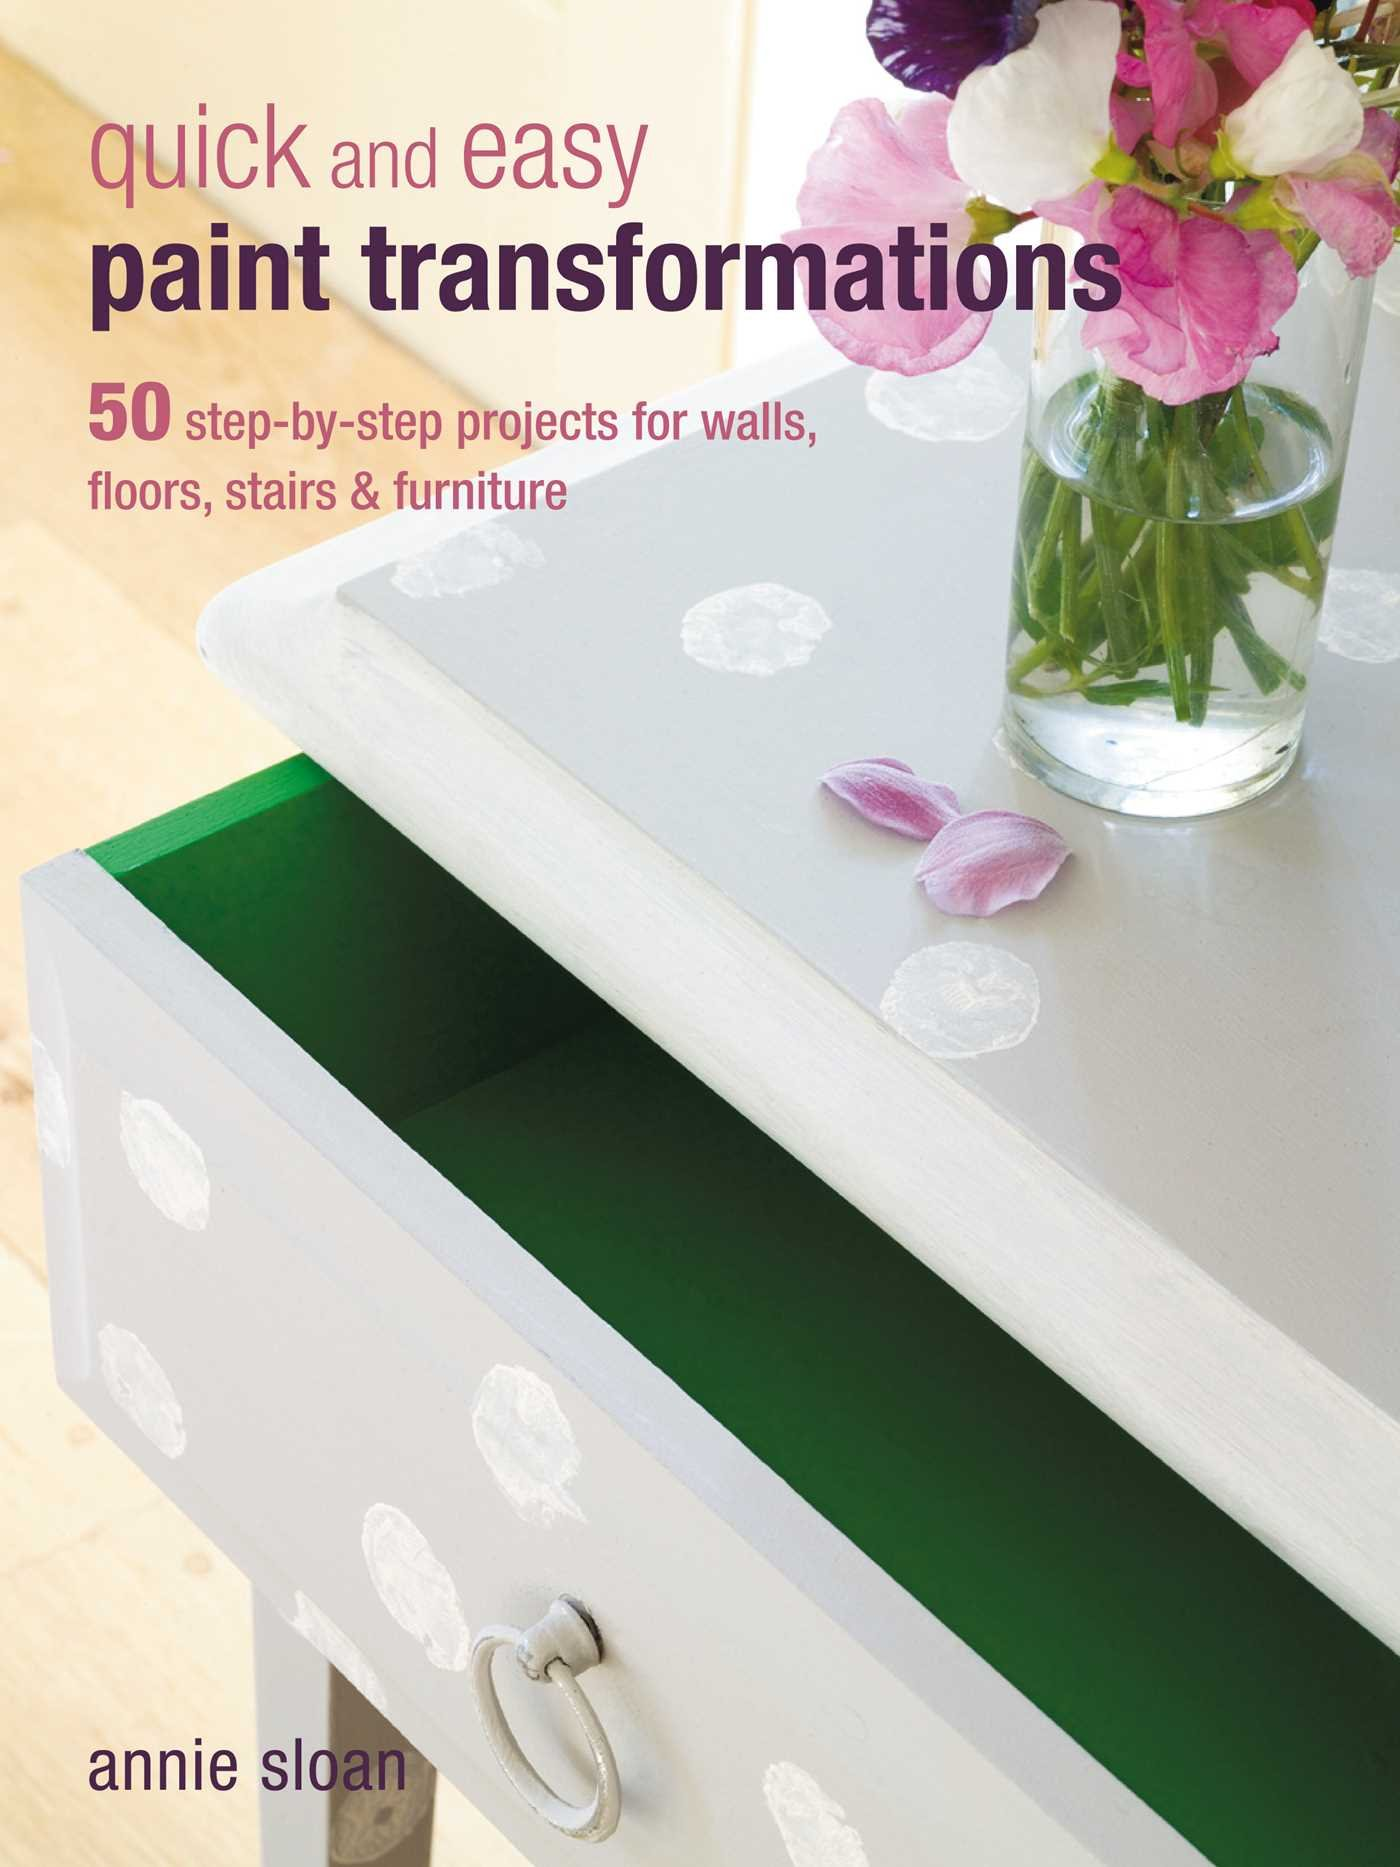 Quick And Easy Paint Transformations: 50 Step By Step Projects For Walls,  Floors, Stairs U0026 Furniture: Annie Sloan: 0884555827516: Amazon.com: Books